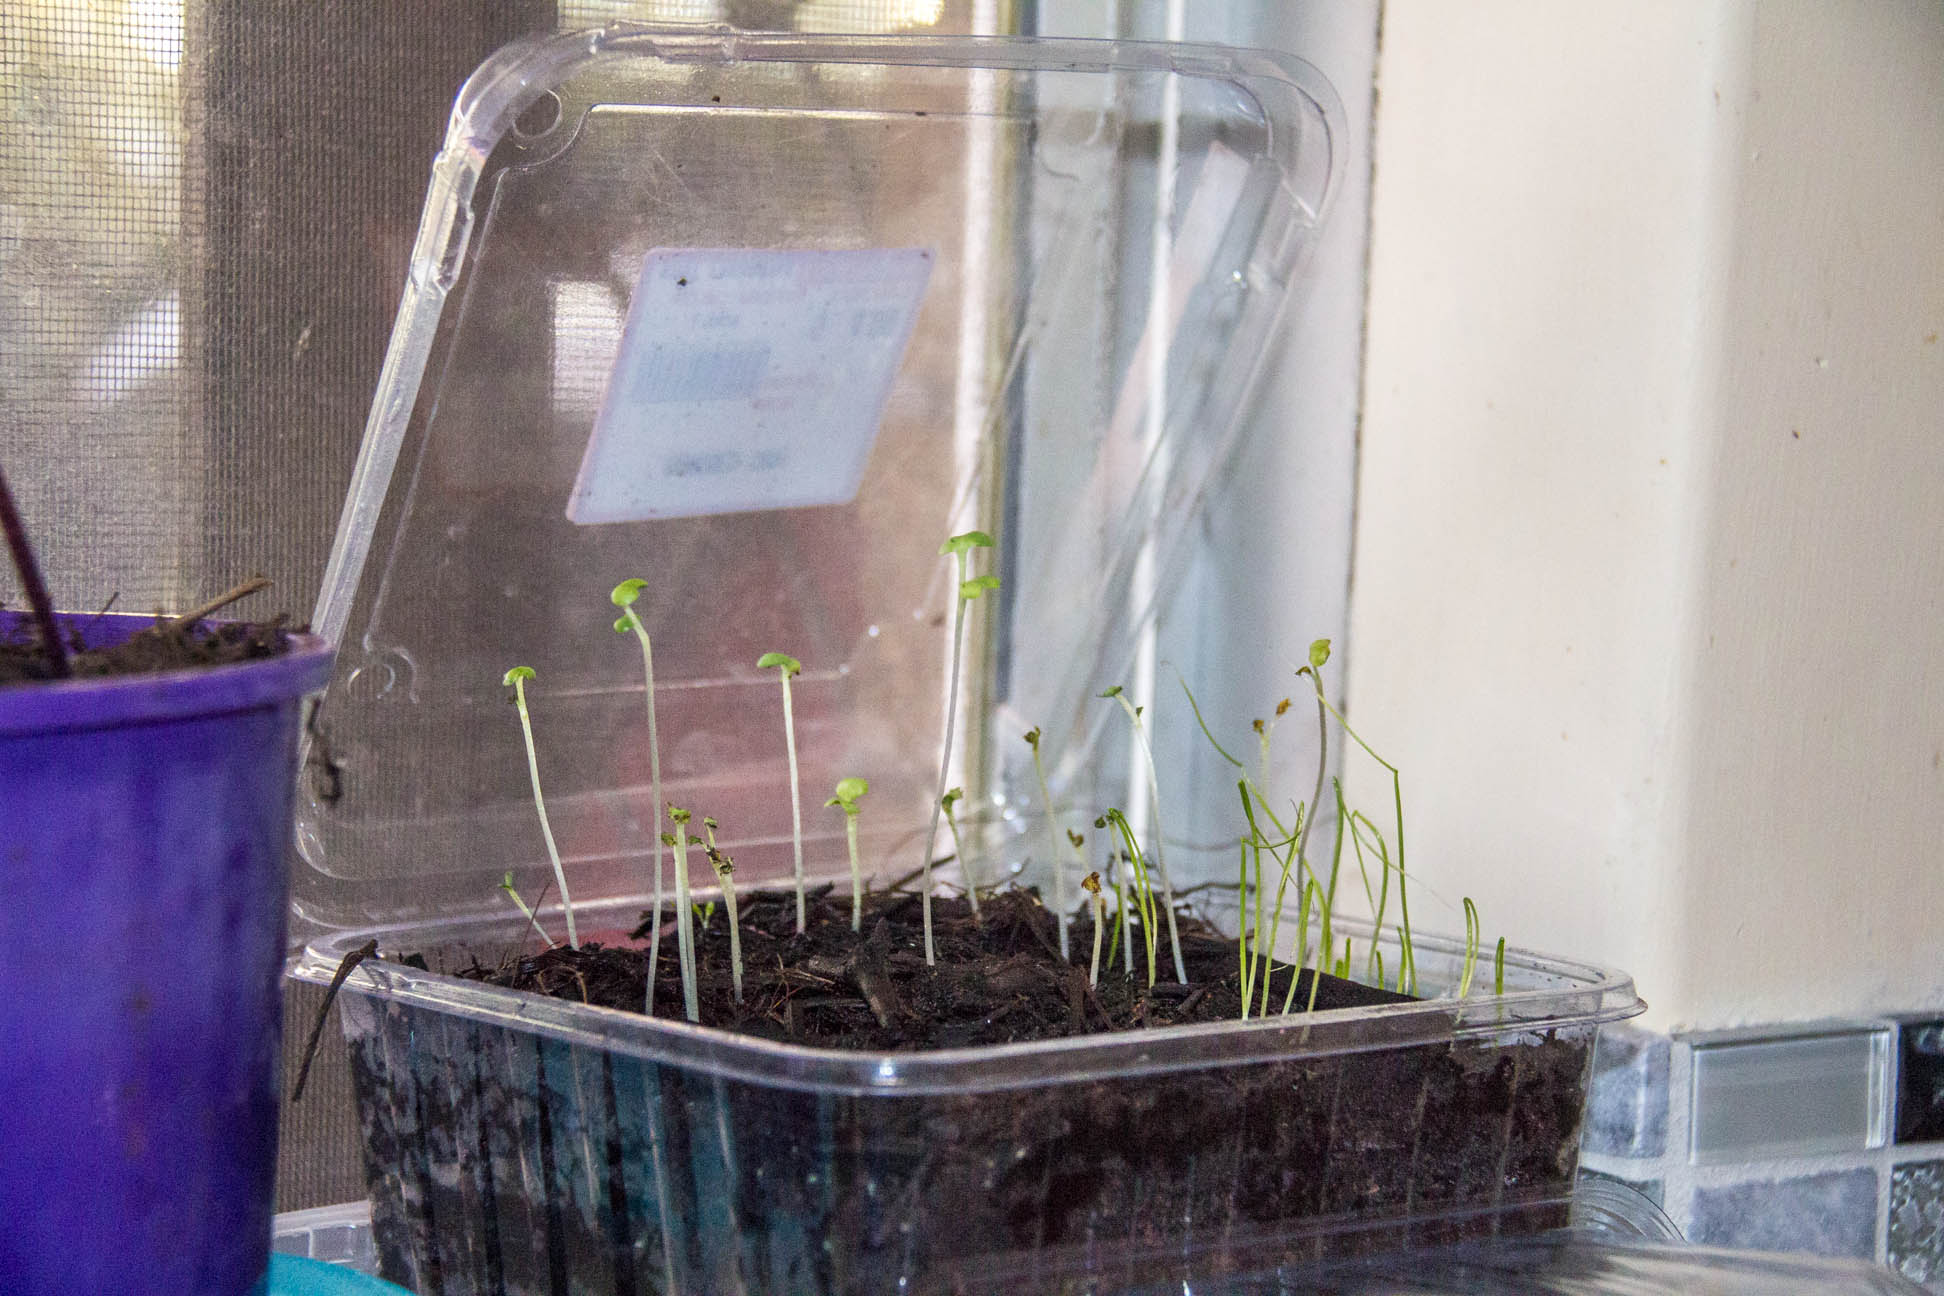 07/05/15 Day 14 seedlings are still growing tall and strong